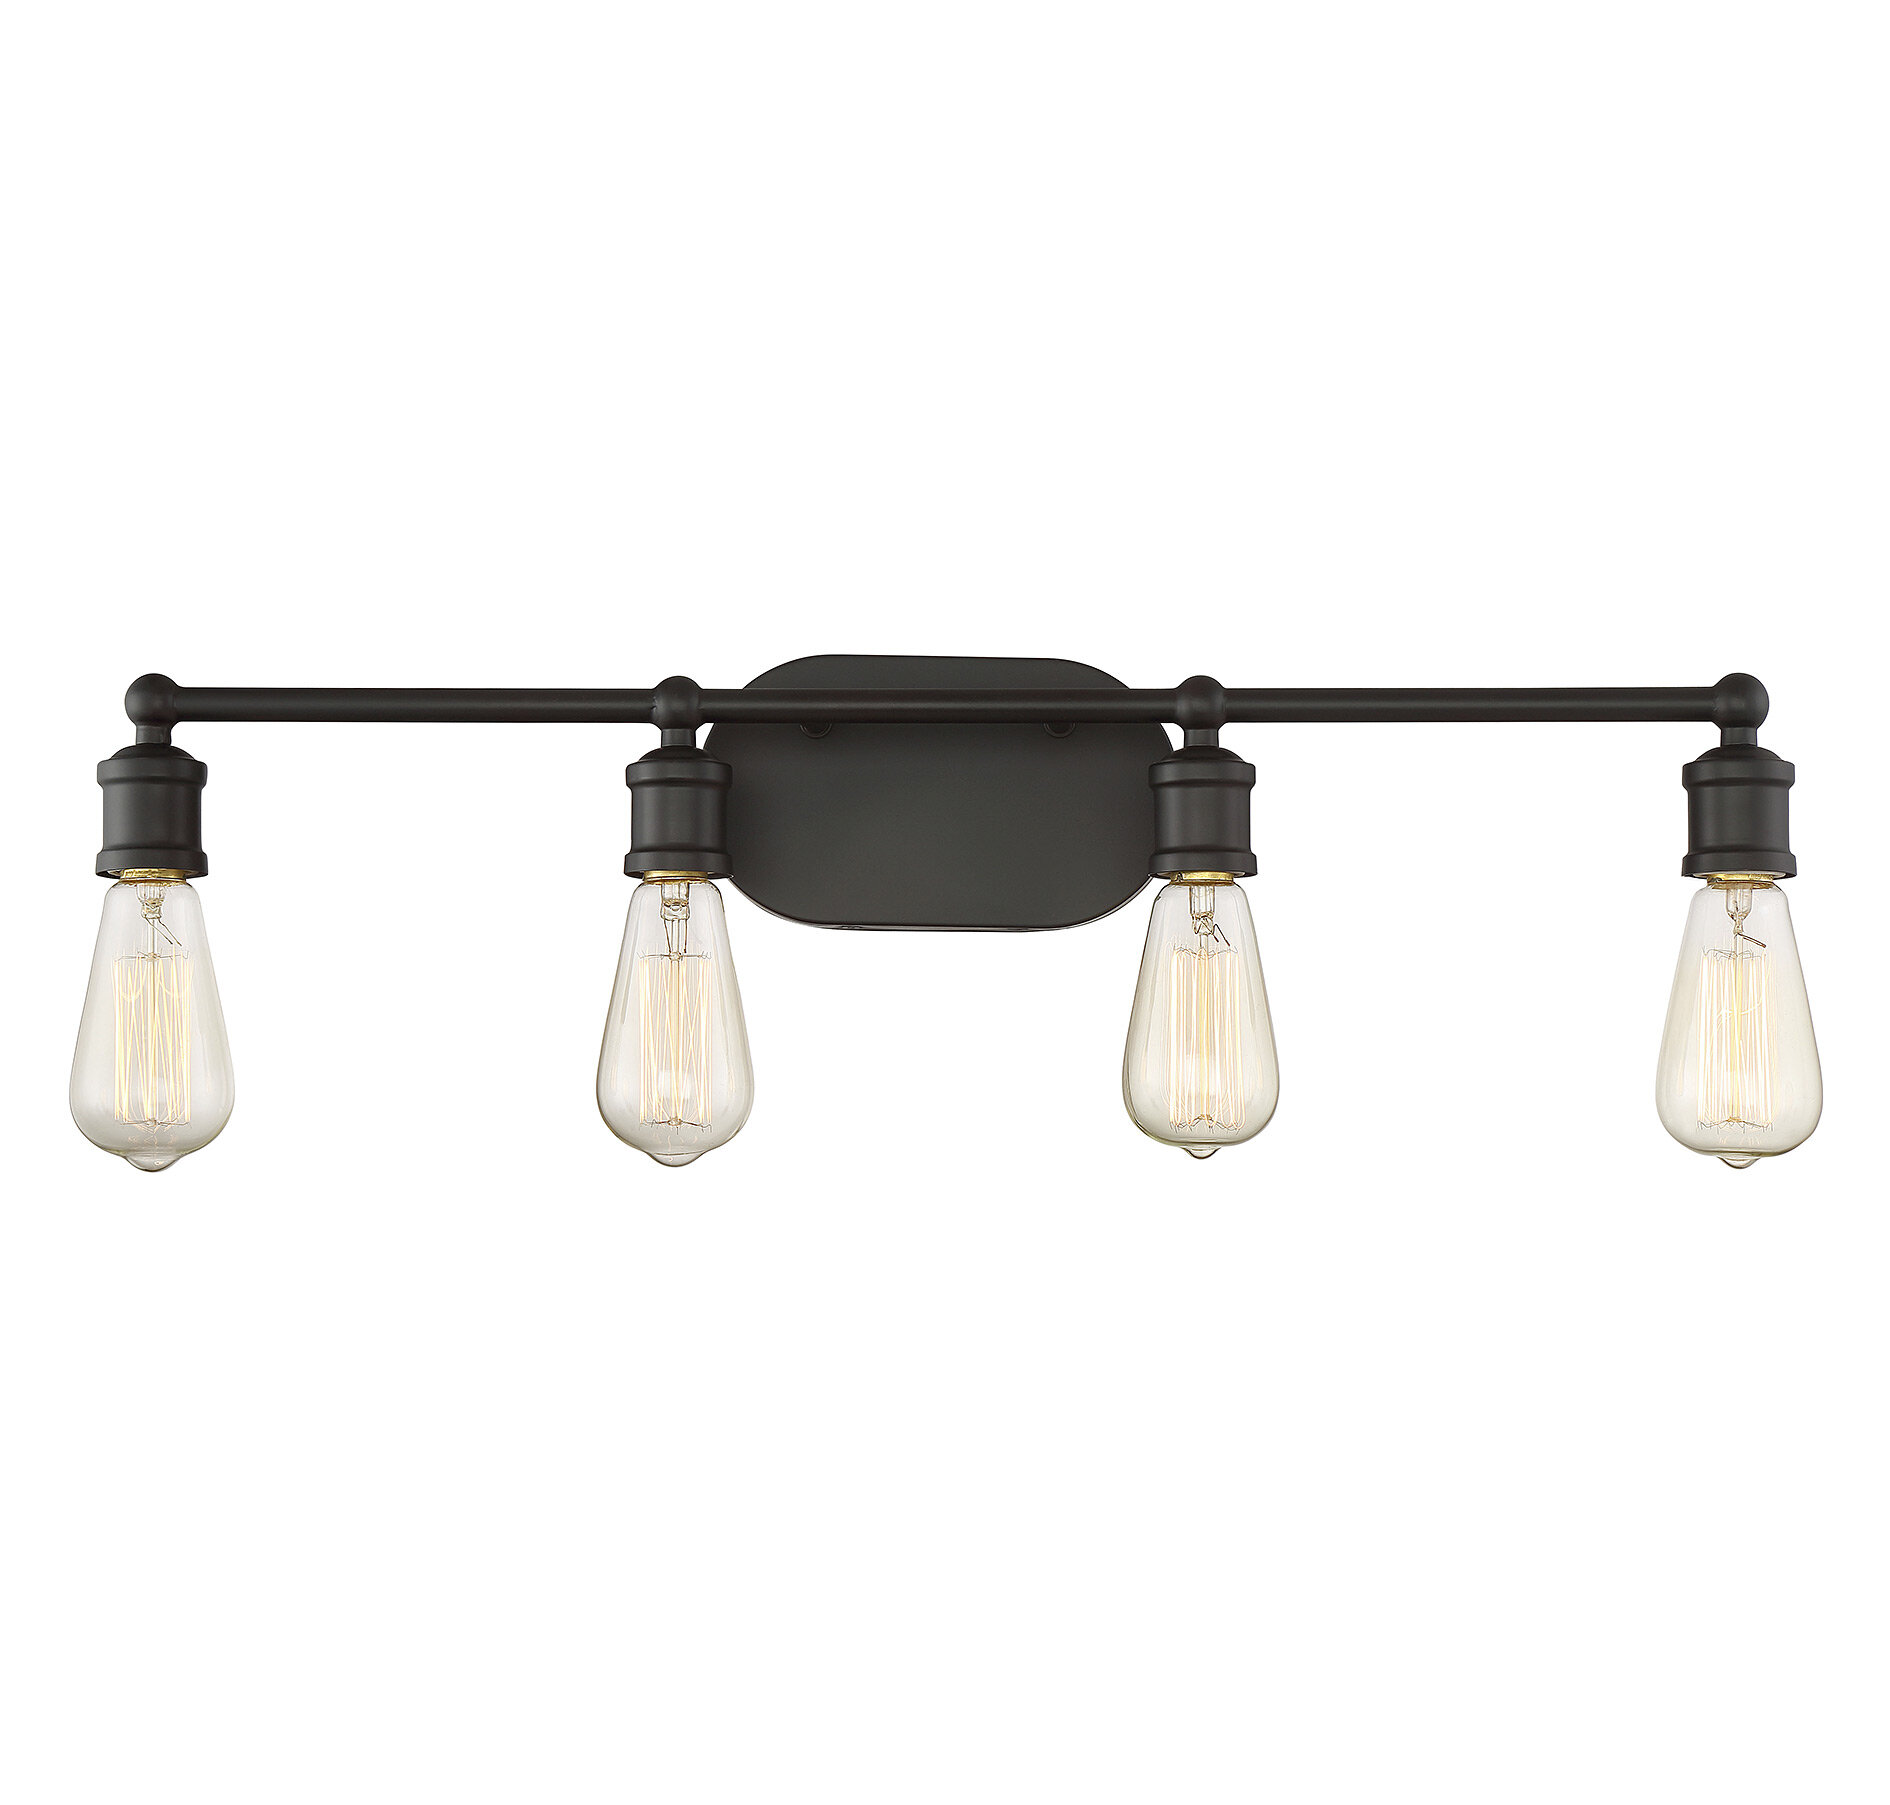 Trent Austin Design Loredo 4-Light Vanity Light & Reviews | Wayfair